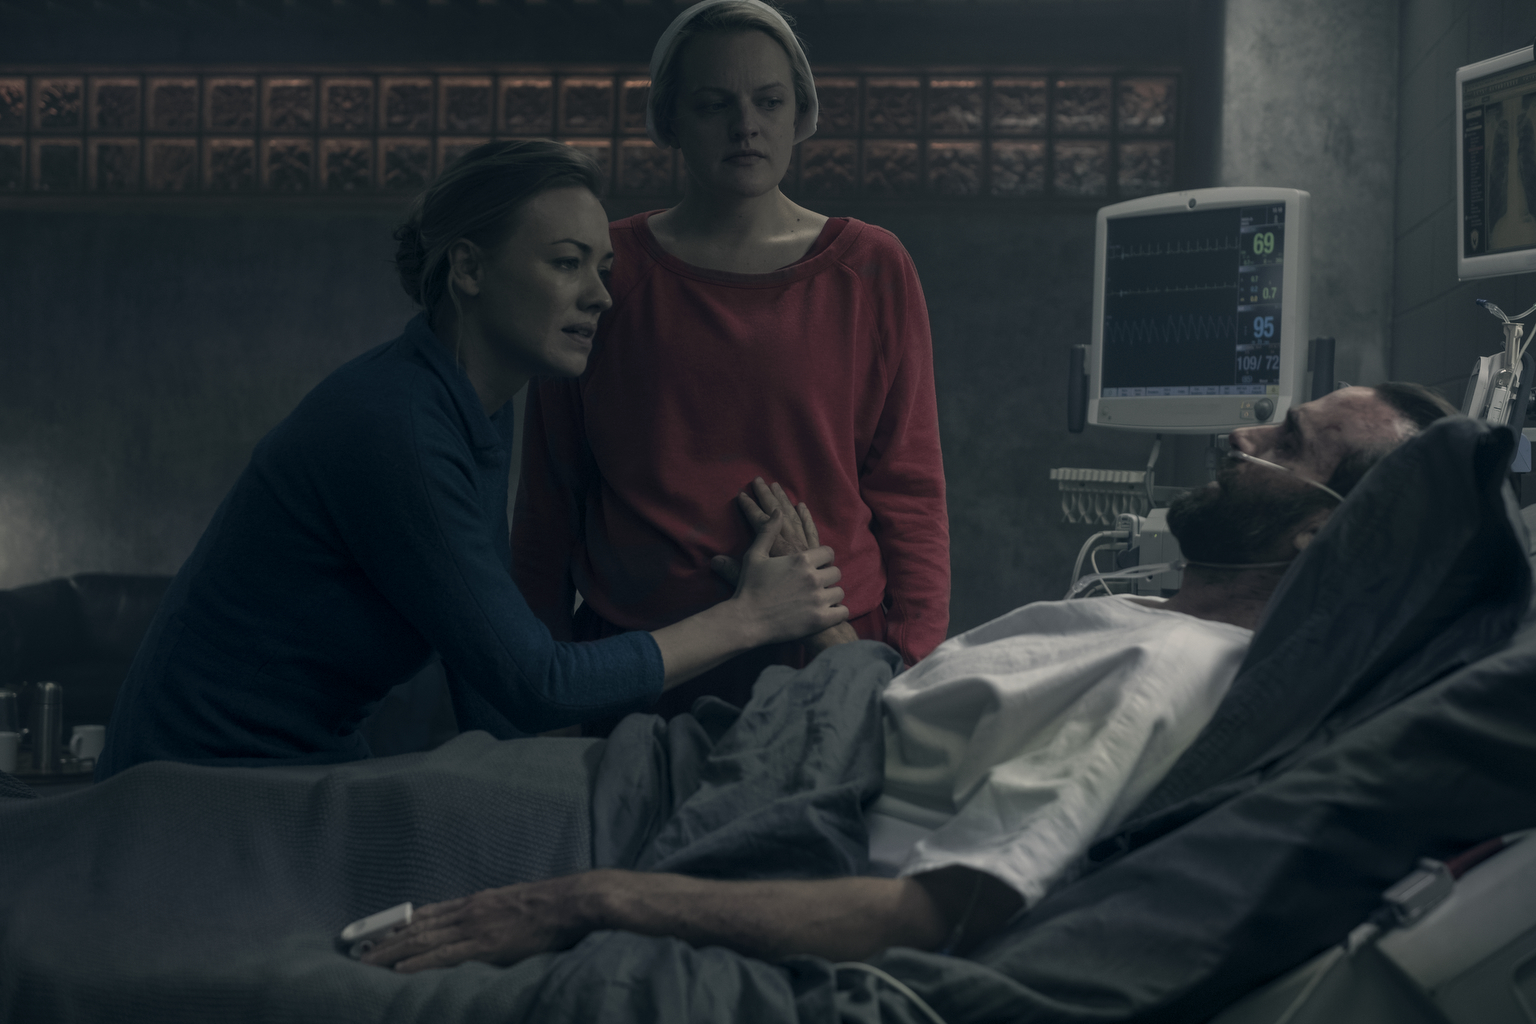 "The Handmaid's Tale --""After"" - Episode 207 -- An attack sends shockwaves through both Gilead and Little America. Serena Joy makes a dangerous choice in order to protect her family. Moira searches for someone from her past. Serena Joy (Yvonne Strahovski) from left, Offred (Elisabeth Moss) and Commander Waterford (Joseph Fiennes), shown. (Photo by: George Kraychyk/Hulu)"